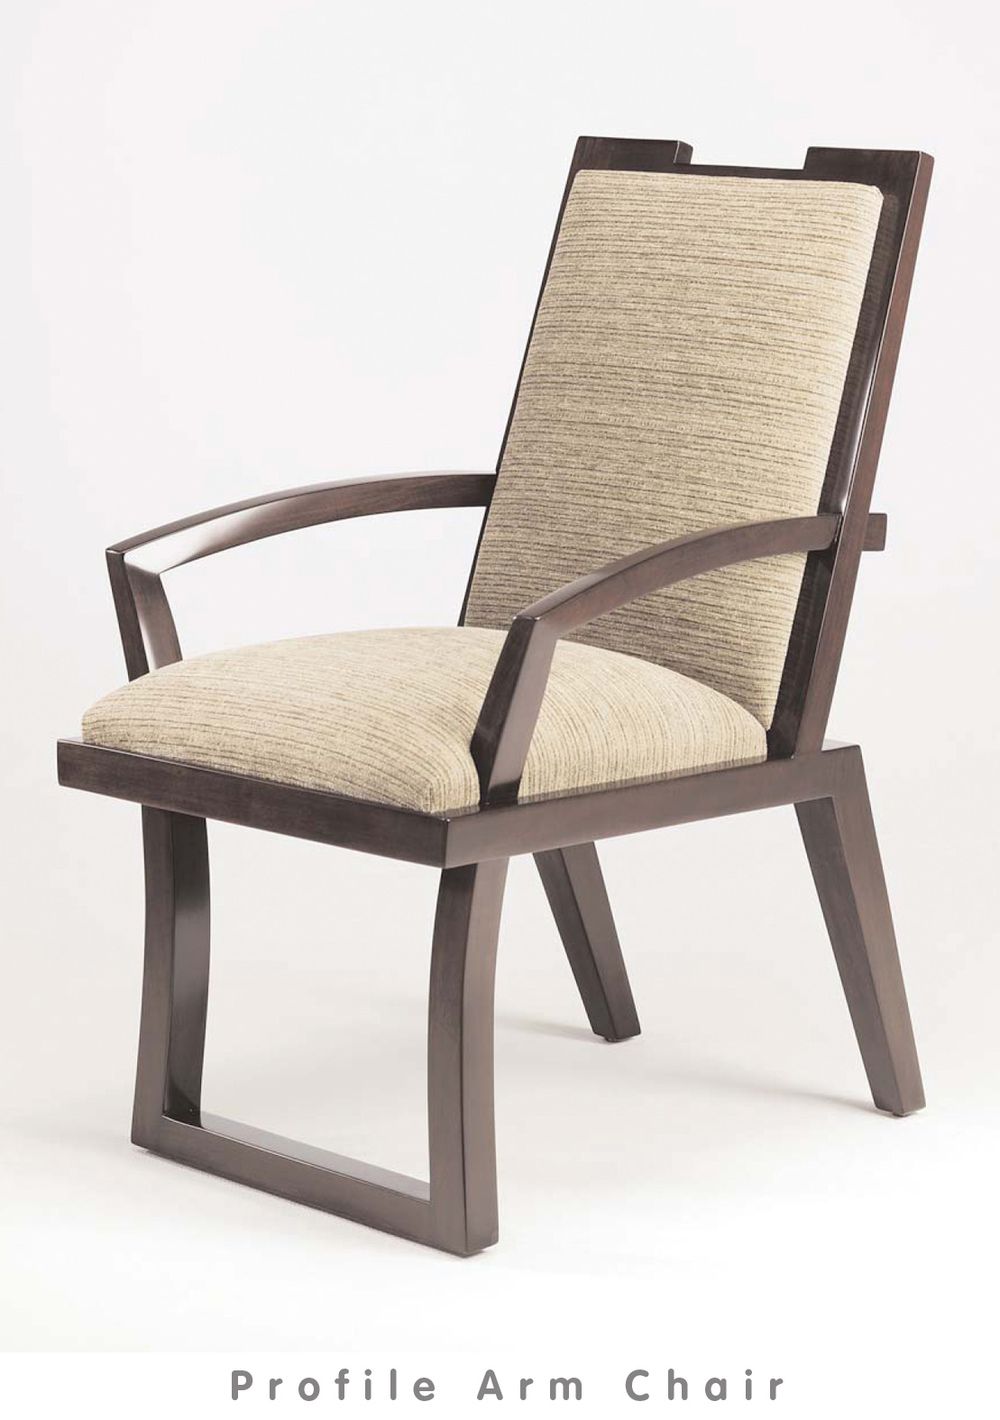 Profile Arm Chair